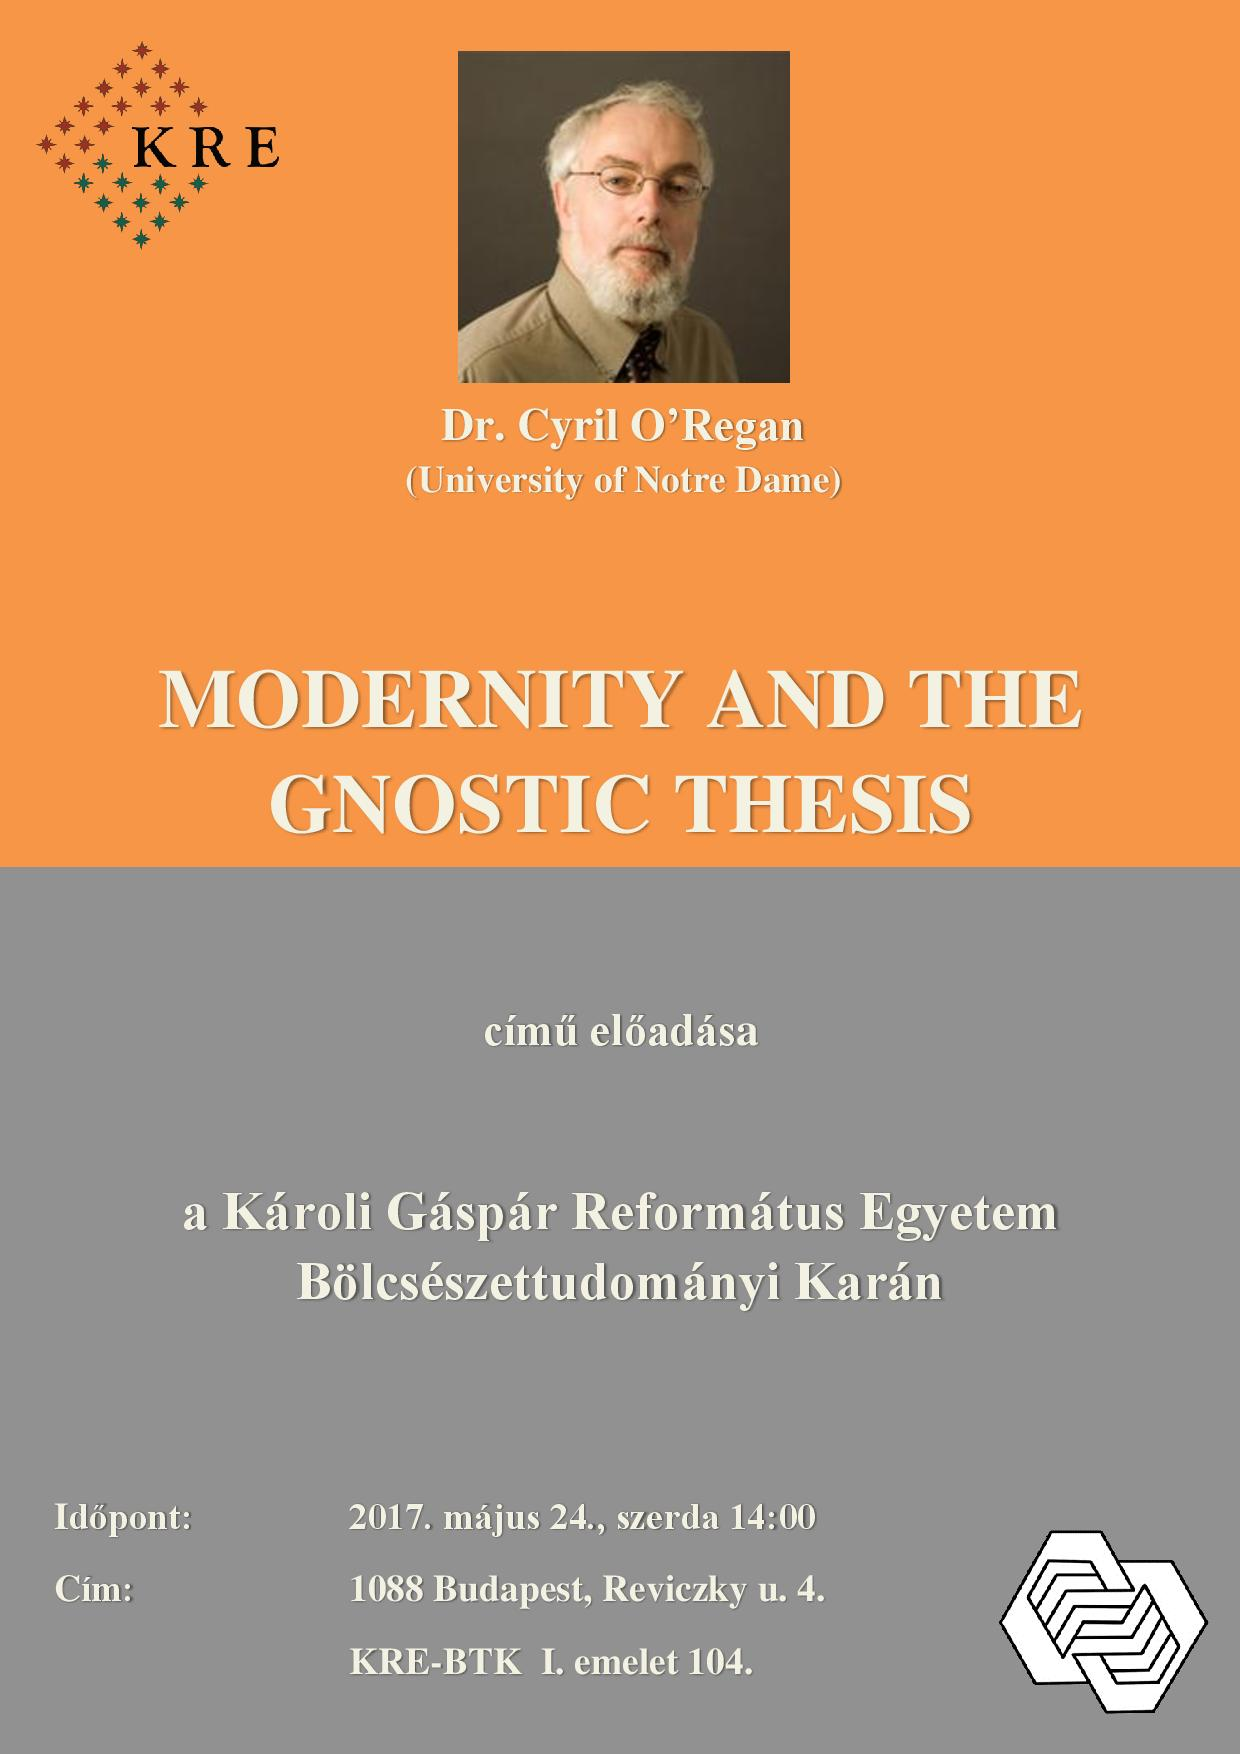 thesis of modernity This thesis explores two lines of critique of social theories of modernity by way of a historical sociological analysis of burundi and rwanda firstly, it engages.